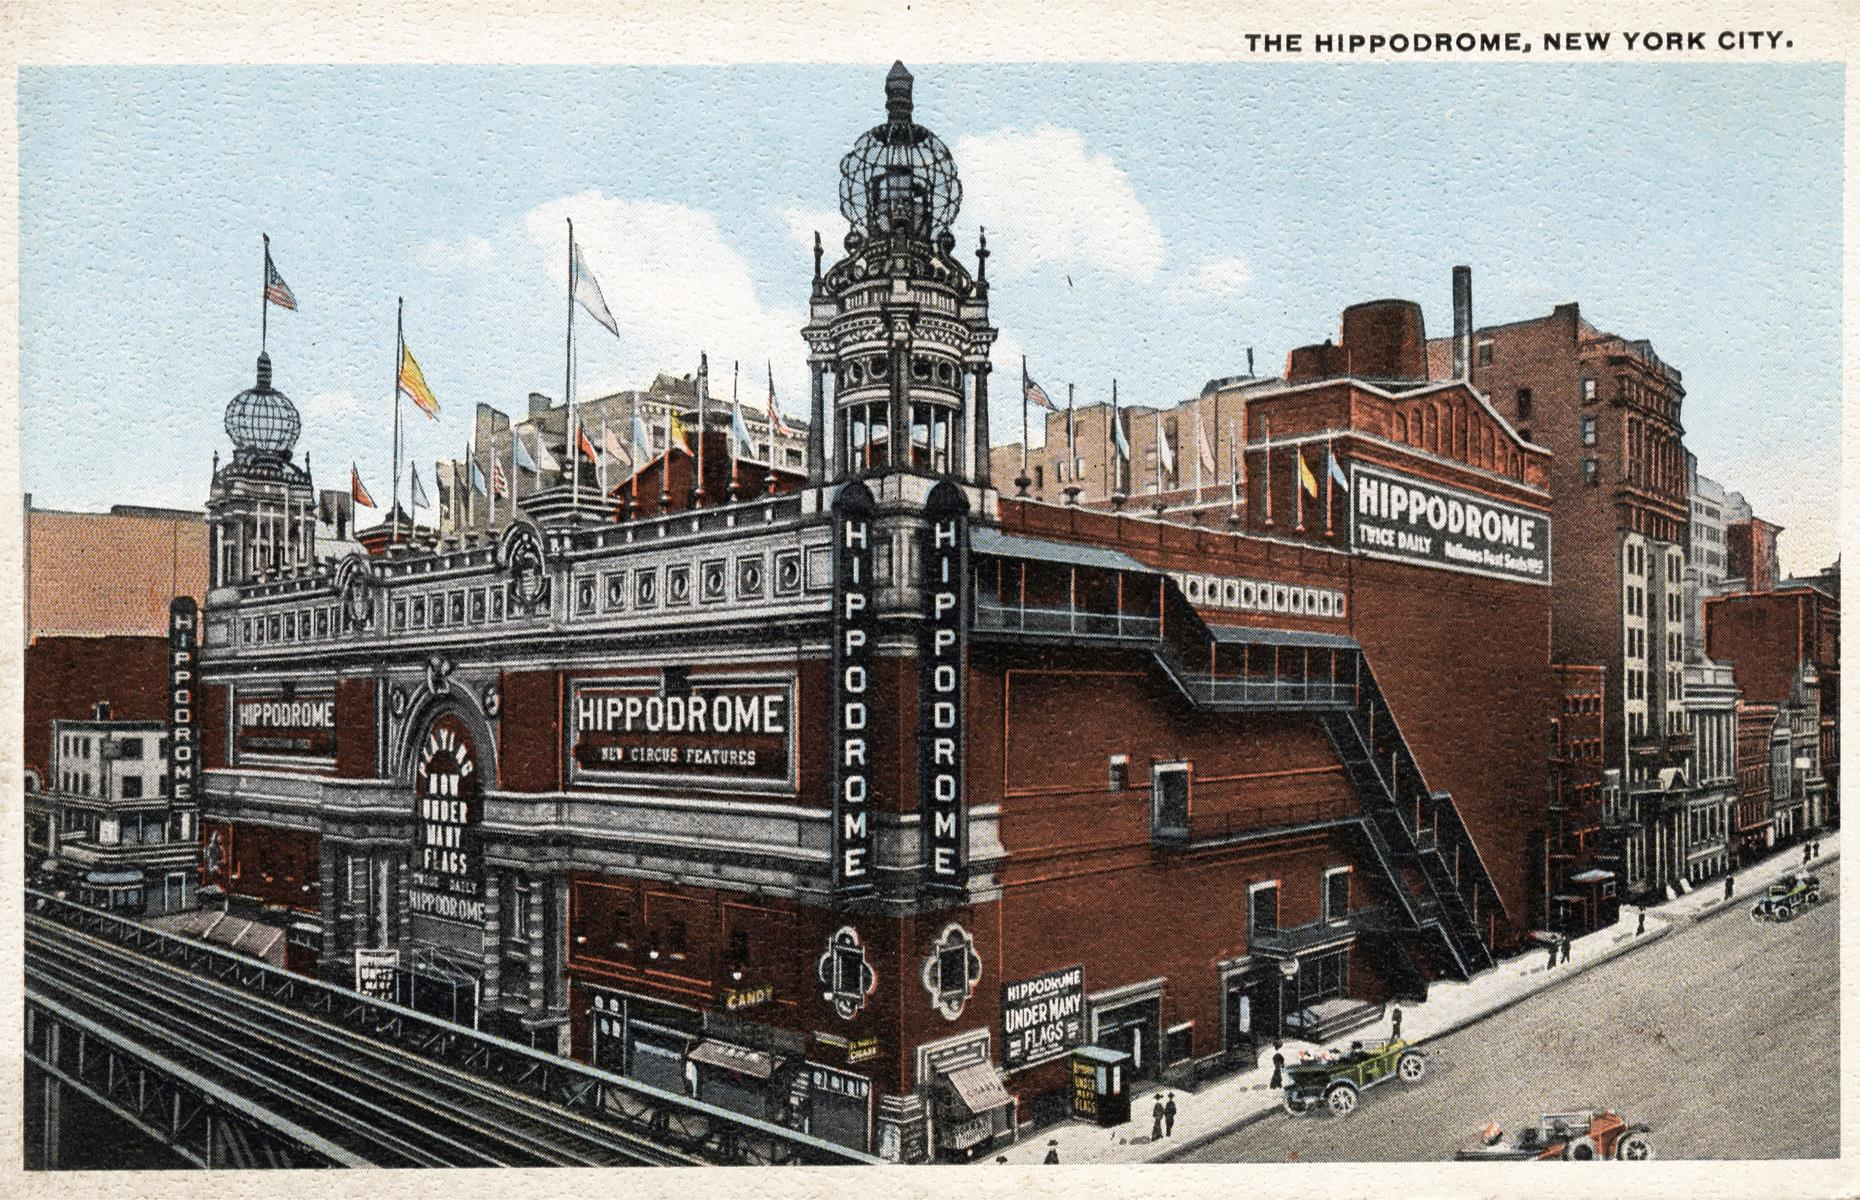 Slide 22 of 39: If you had walked down to 1120 6th Avenue in New York 100 years ago, you'd have been greeted by the sight of this spectacular theater. The giant 5,697-seat Hippodrome was the brainchild of entrepreneurs Frederick Thompson and Elmer Scipio Dundy, who enticed new middle-class customers with lower ticket prices and made theater accessible for all.